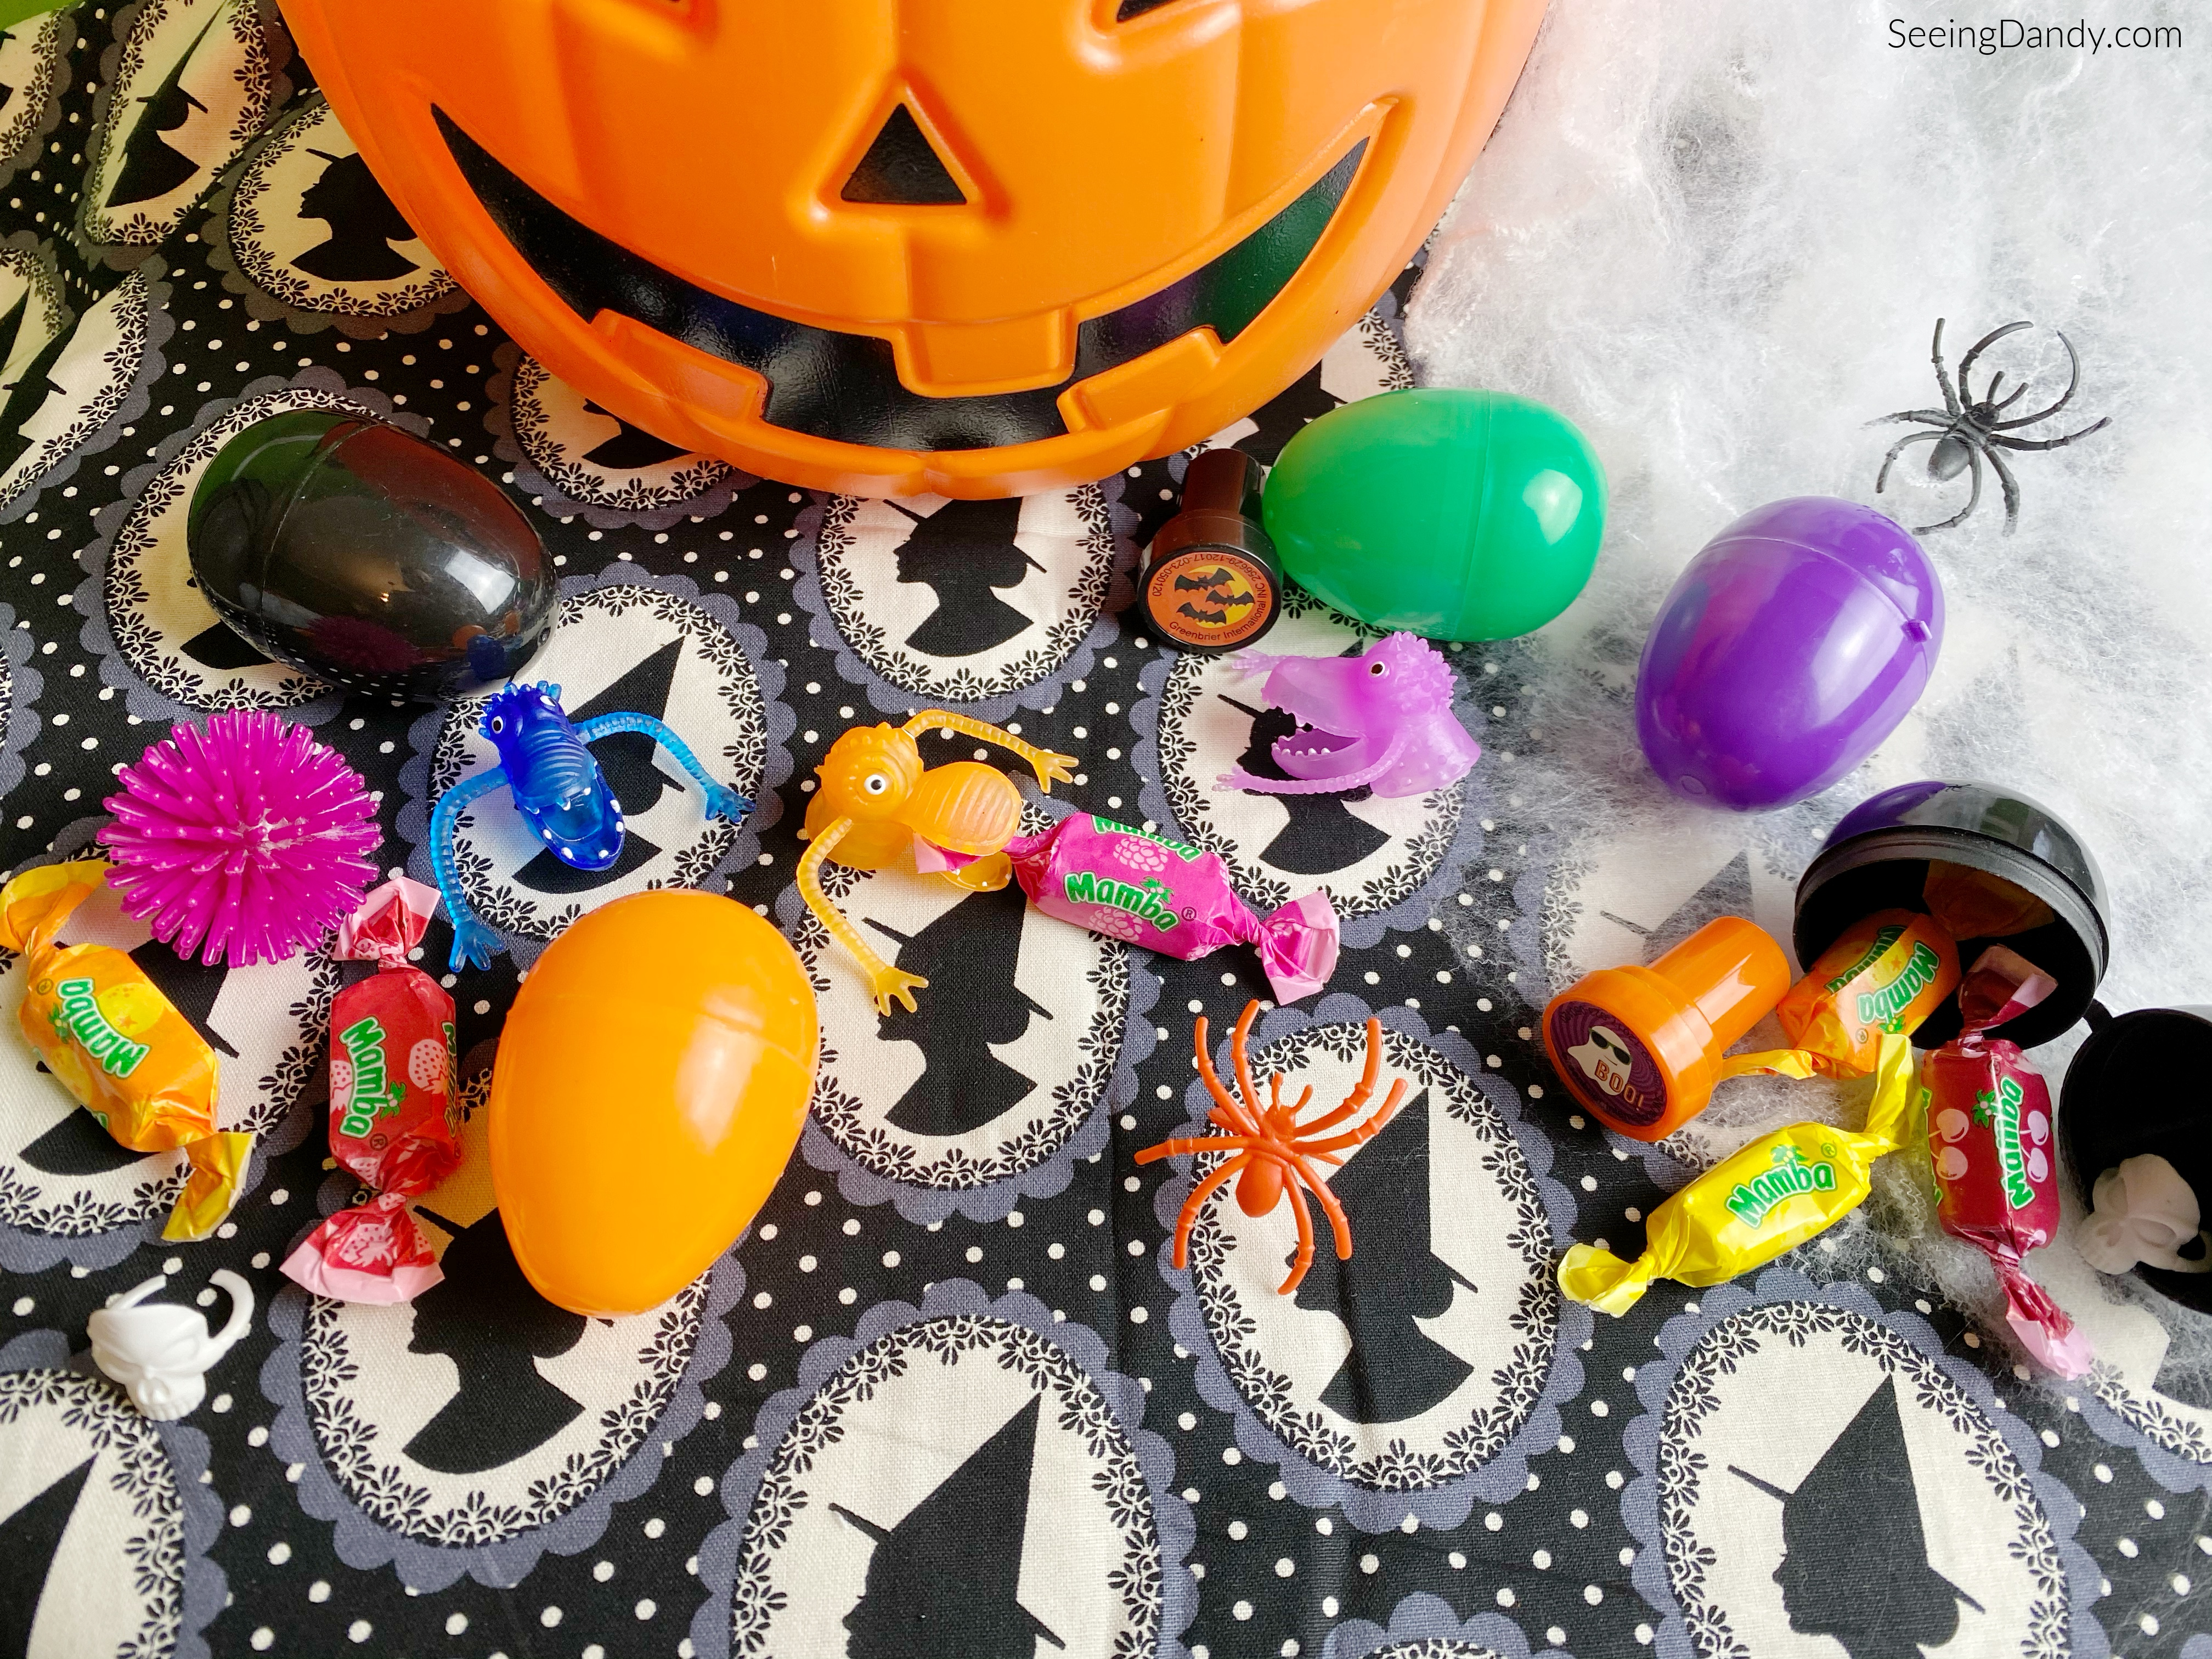 halloween egg hunt, halloween diy, witch fabric, halloween candy, halloween eggs, halloween trinkets, halloween pumpkin, spider rings, halloween stampers, monster finger puppets